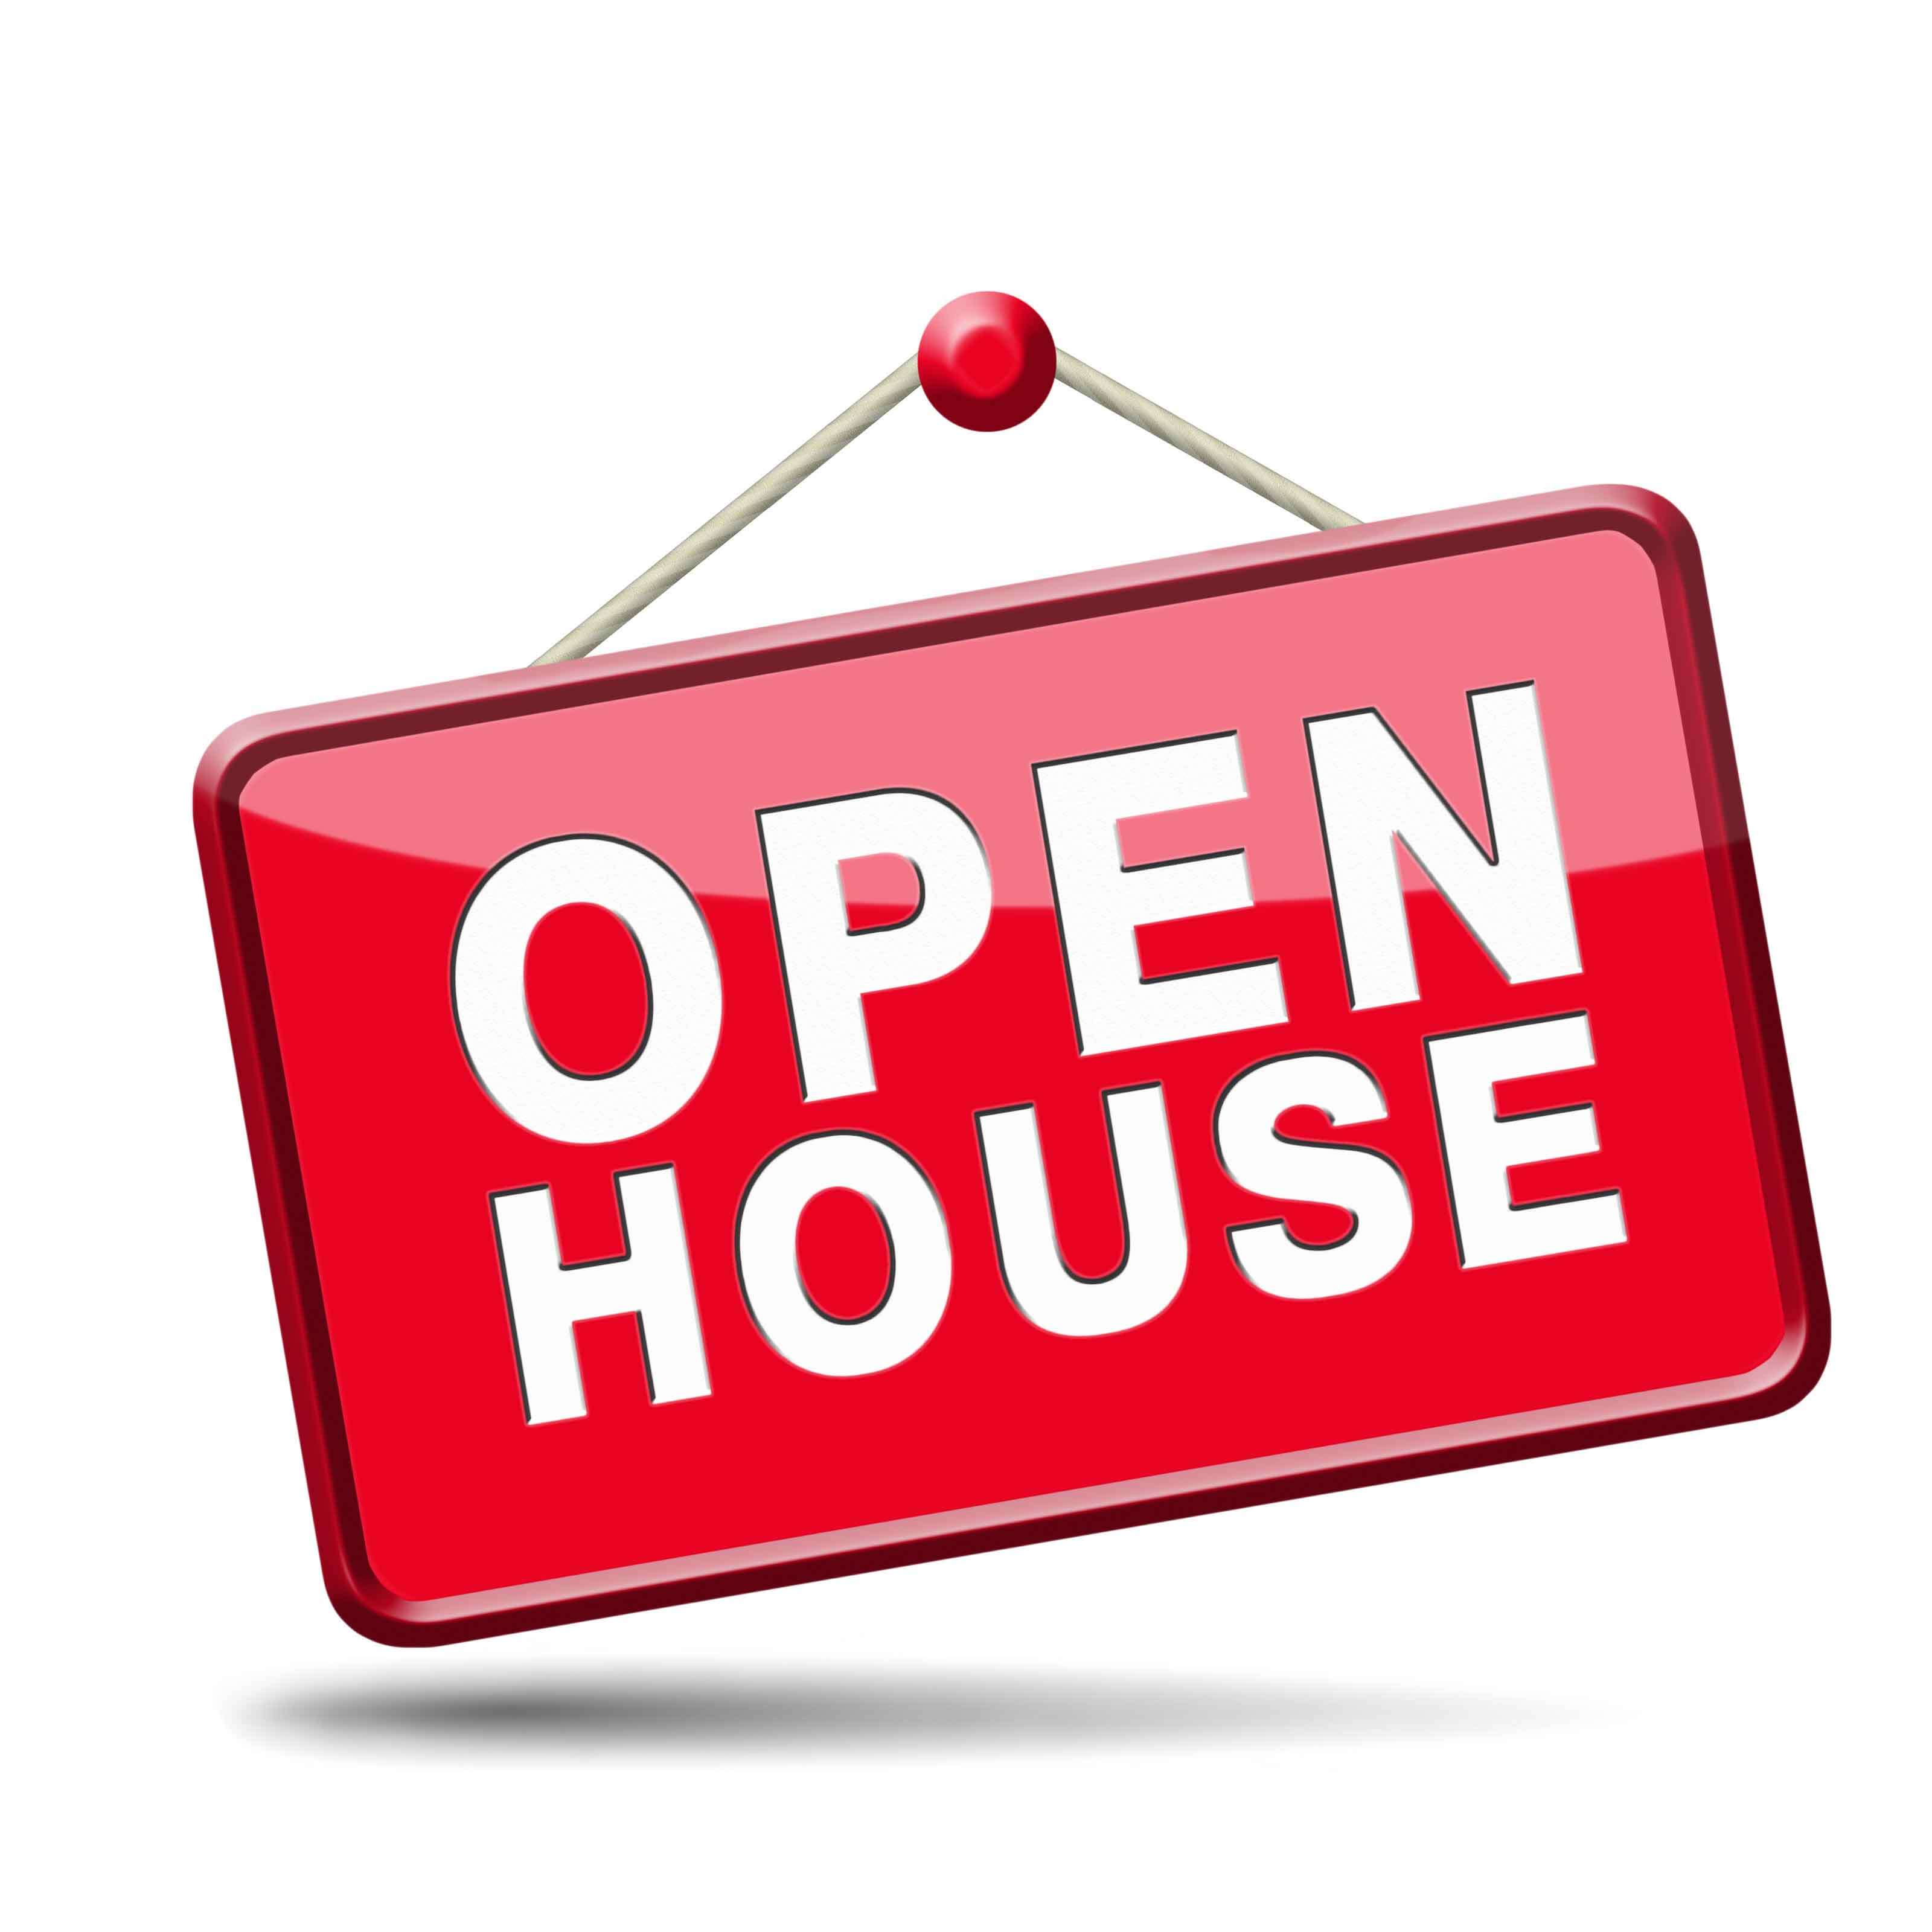 Open house scheduled this weekend at nelson house for Open home